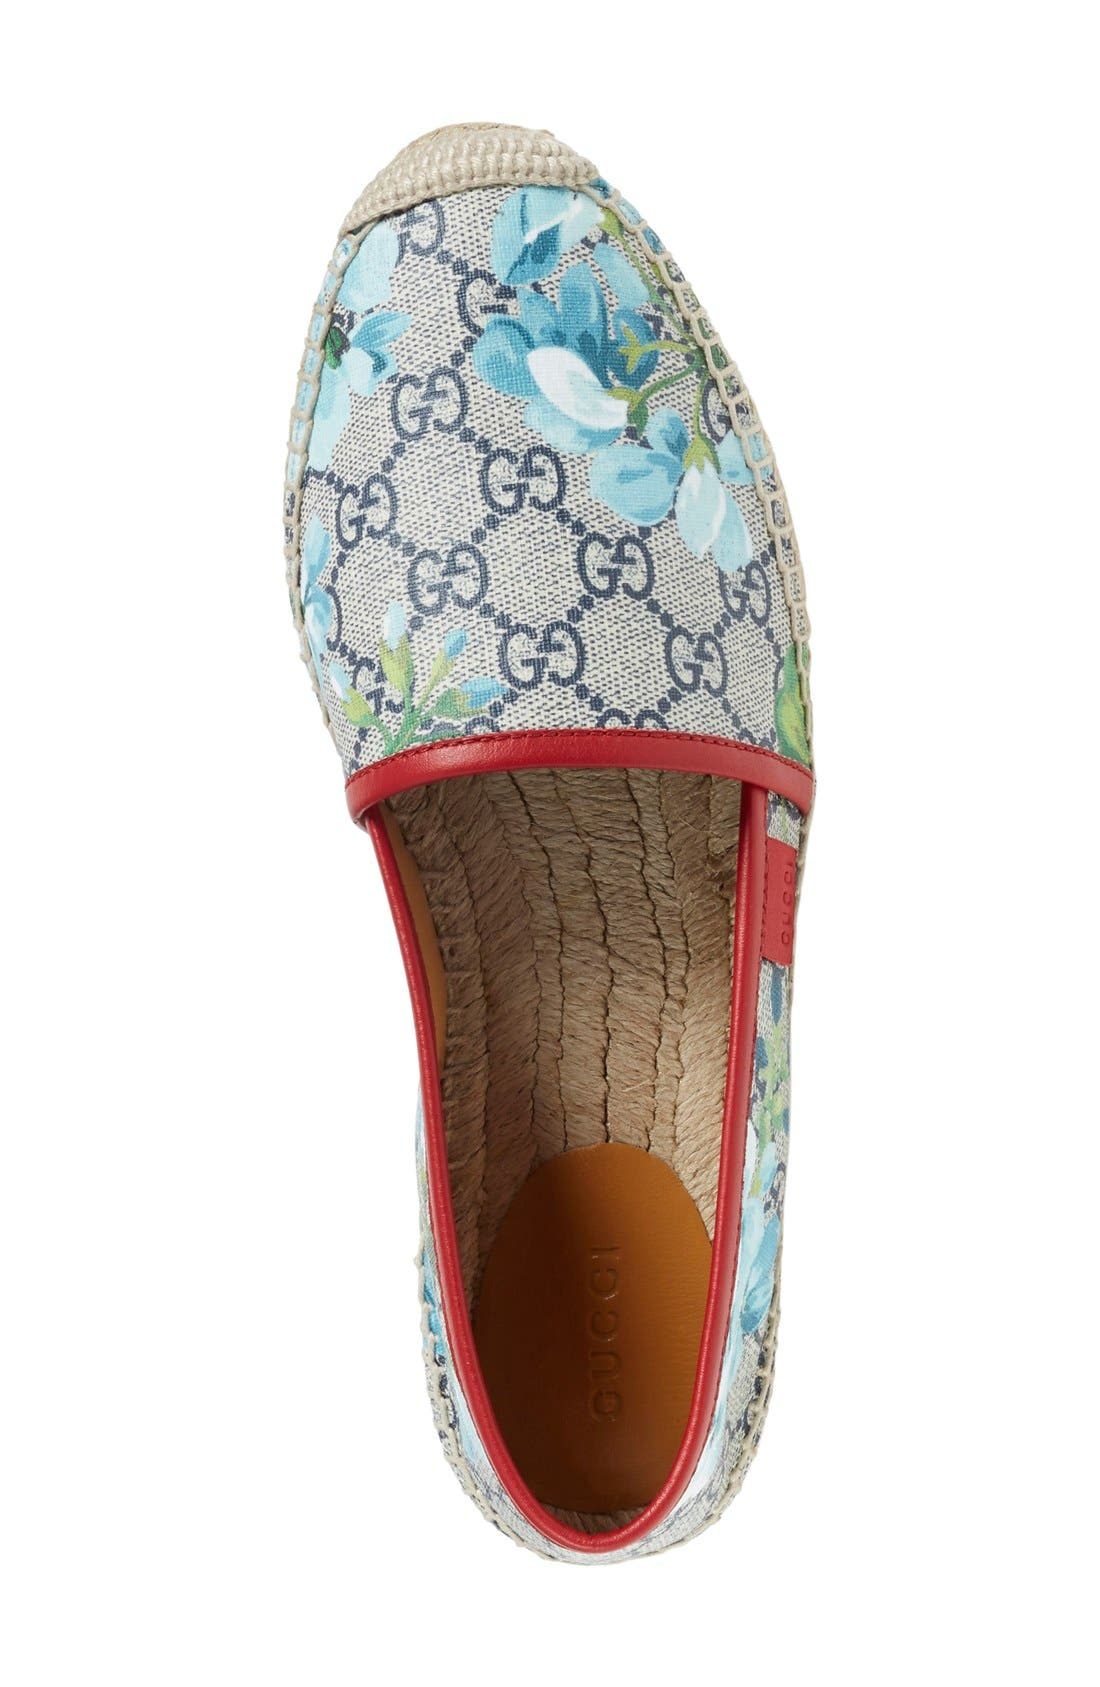 GUCCI, Espadrille Slip-On Flat, Alternate thumbnail 3, color, 600